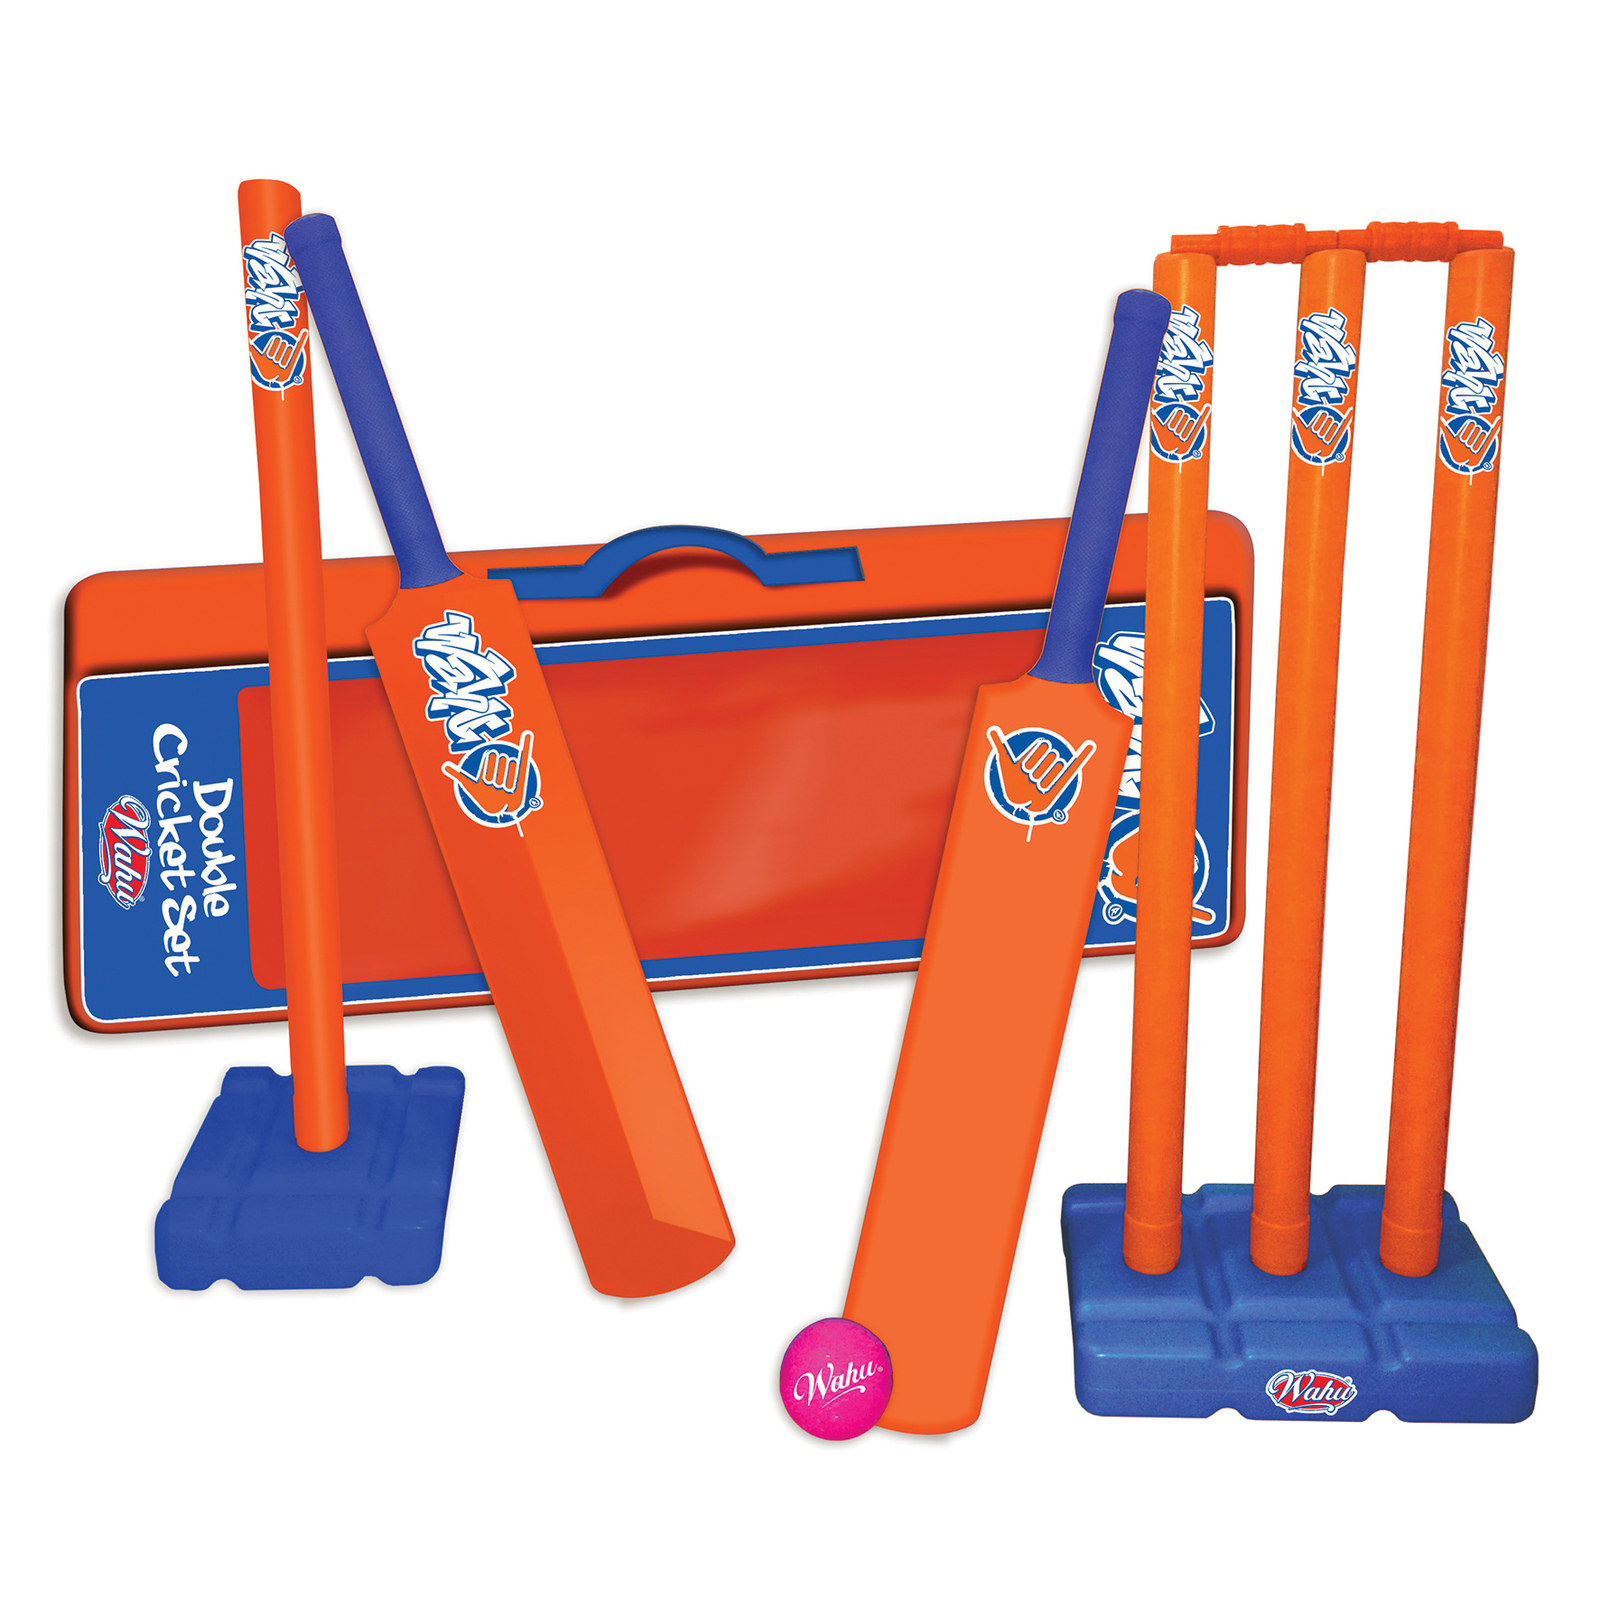 Beach cricket set with two bats, two stumps, a ball and a carry bag